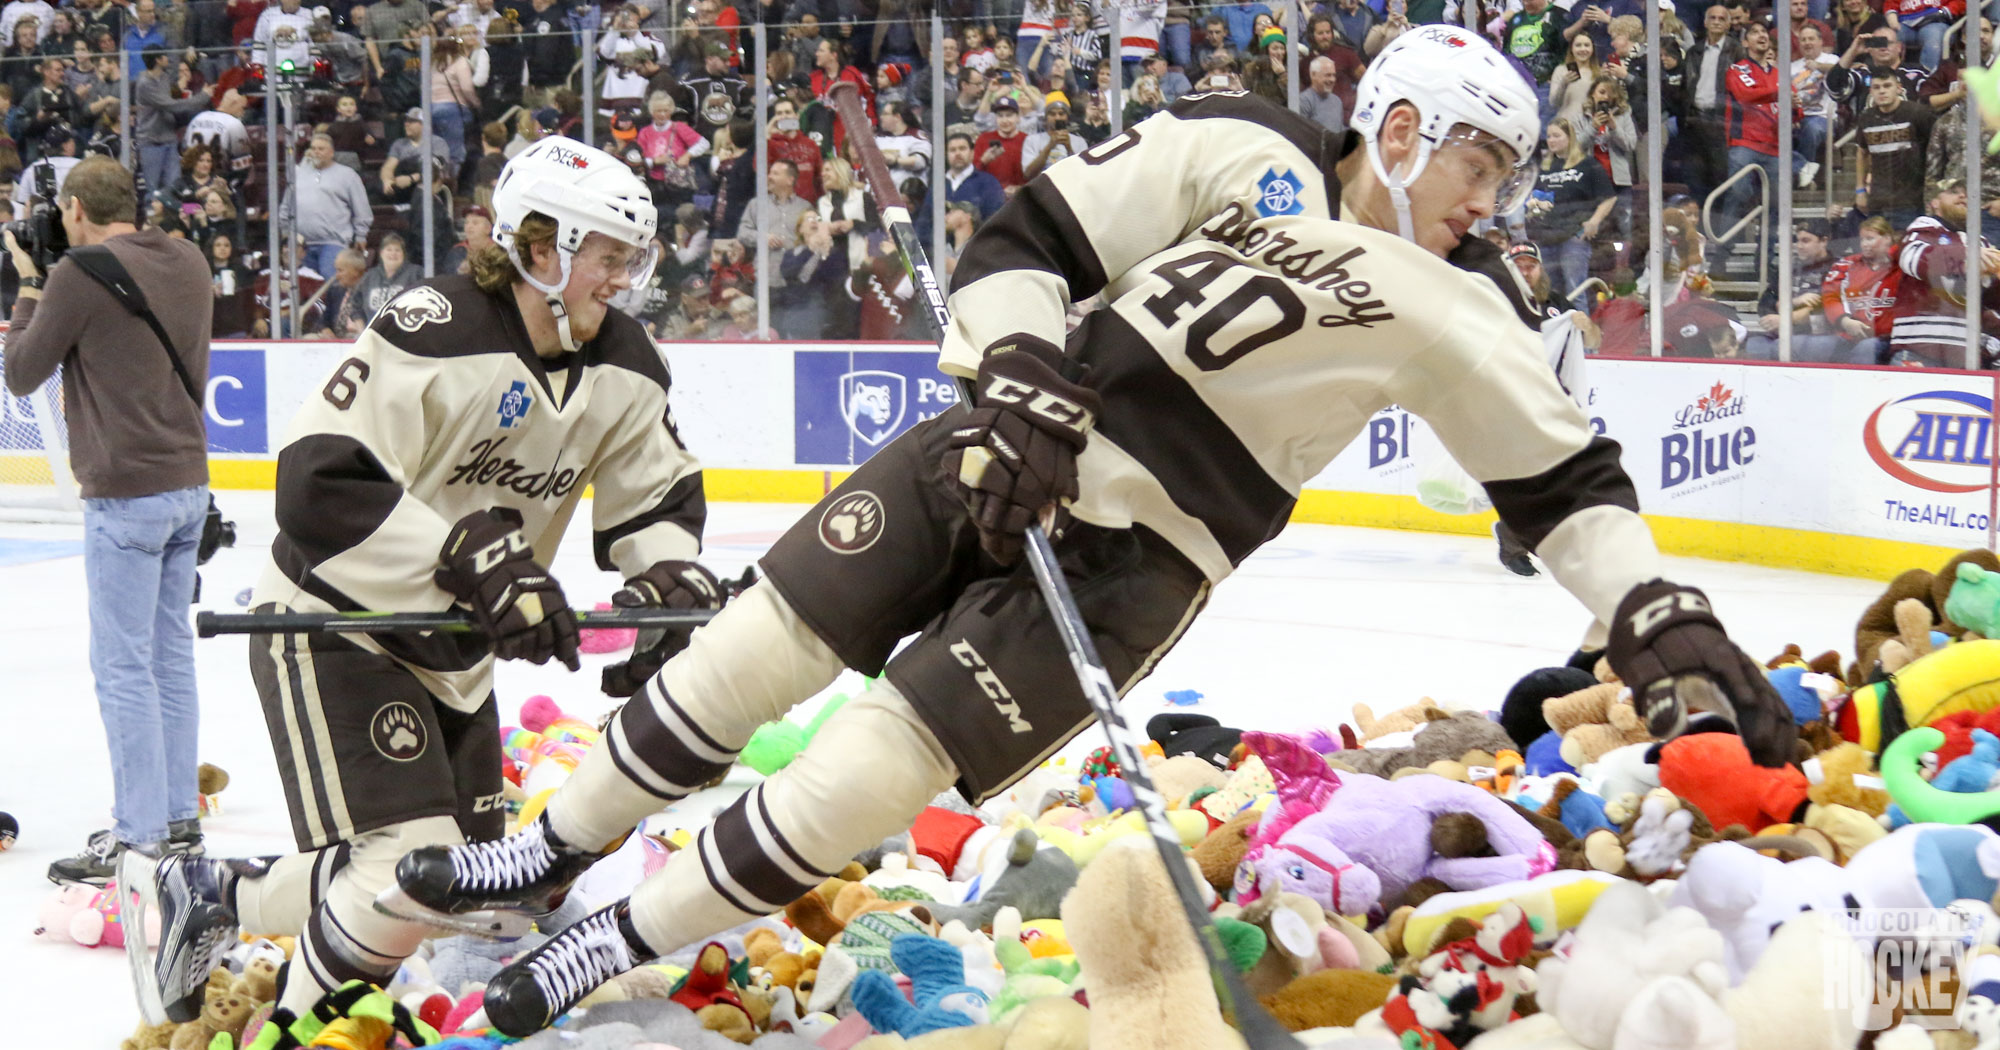 Hershey Bears fans set new record with 25,017 stuffed animals thrown